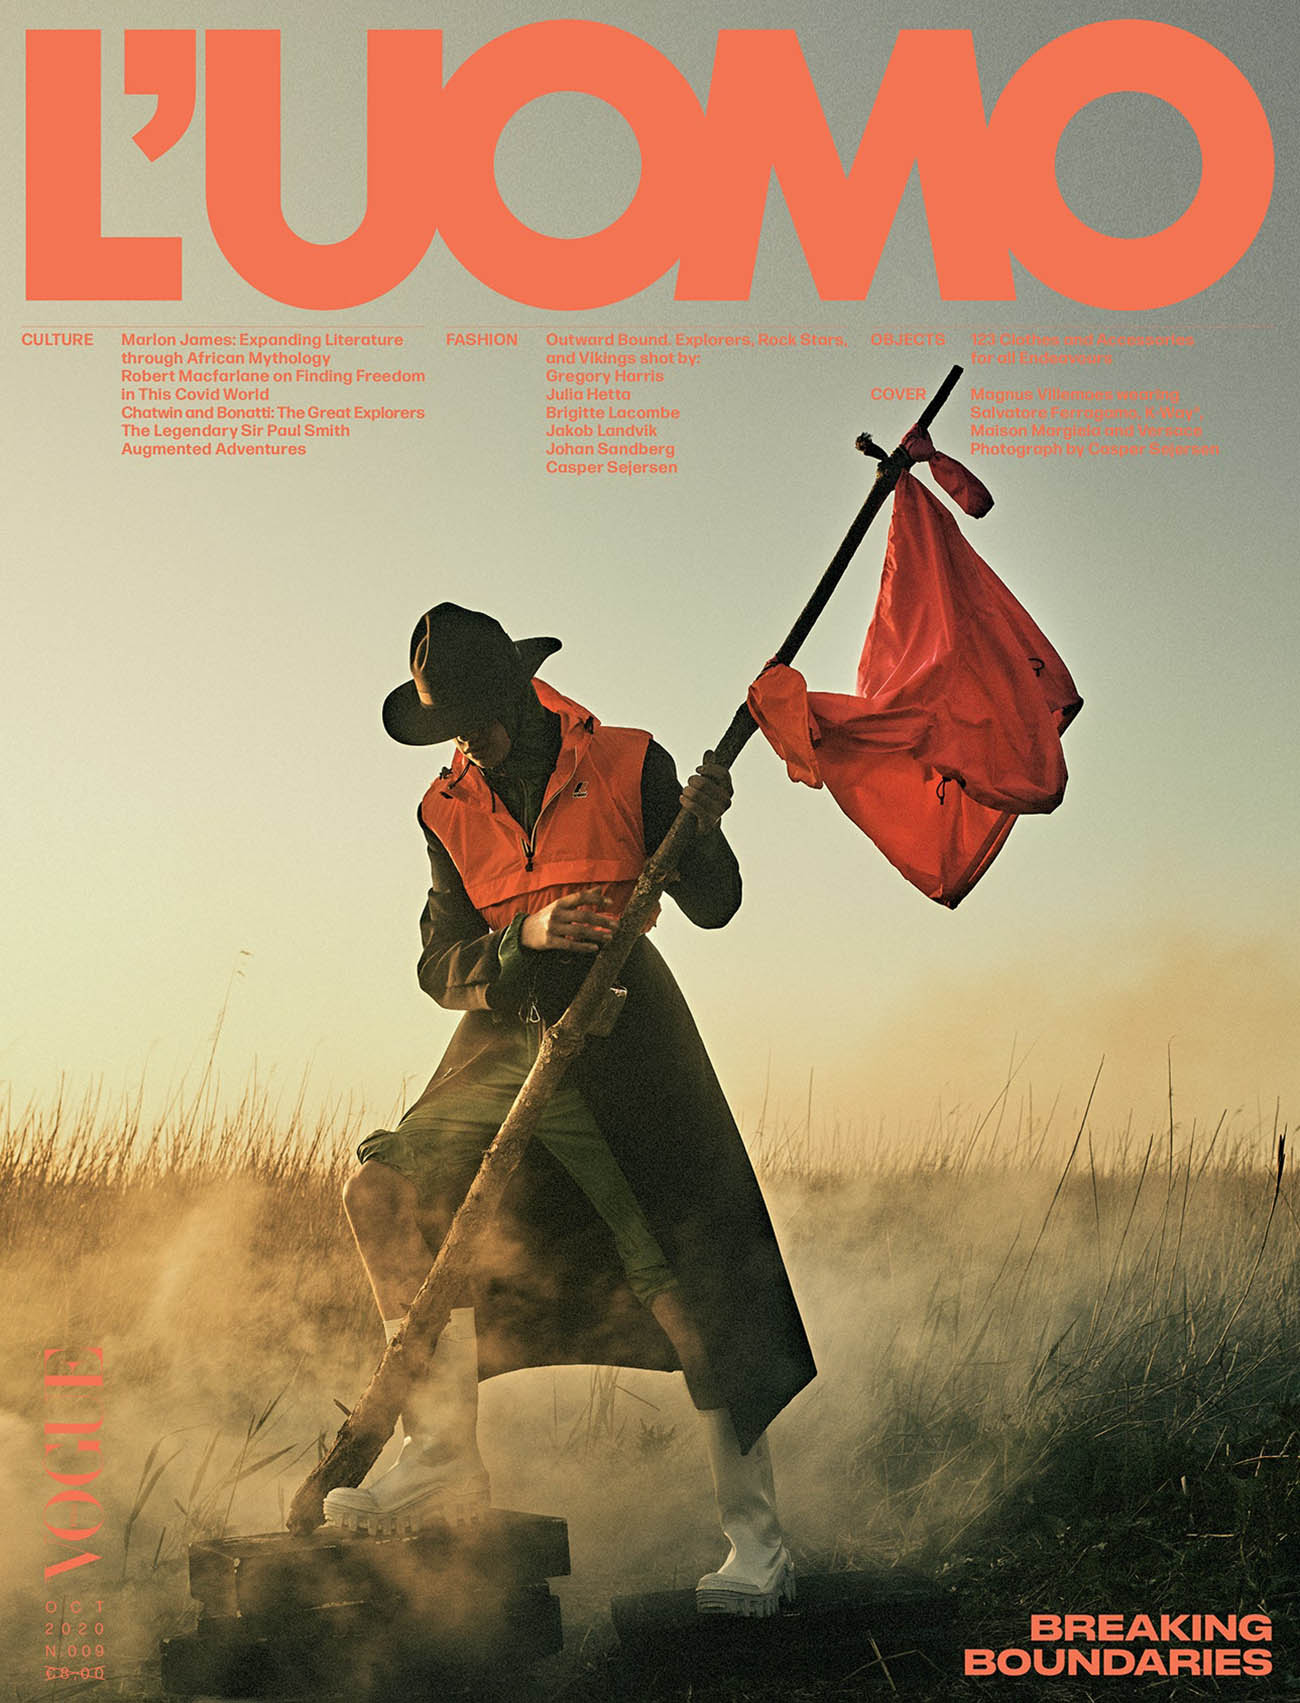 Magnus Villemoes covers L'Uomo Vogue October 2020 by Casper Sejersen